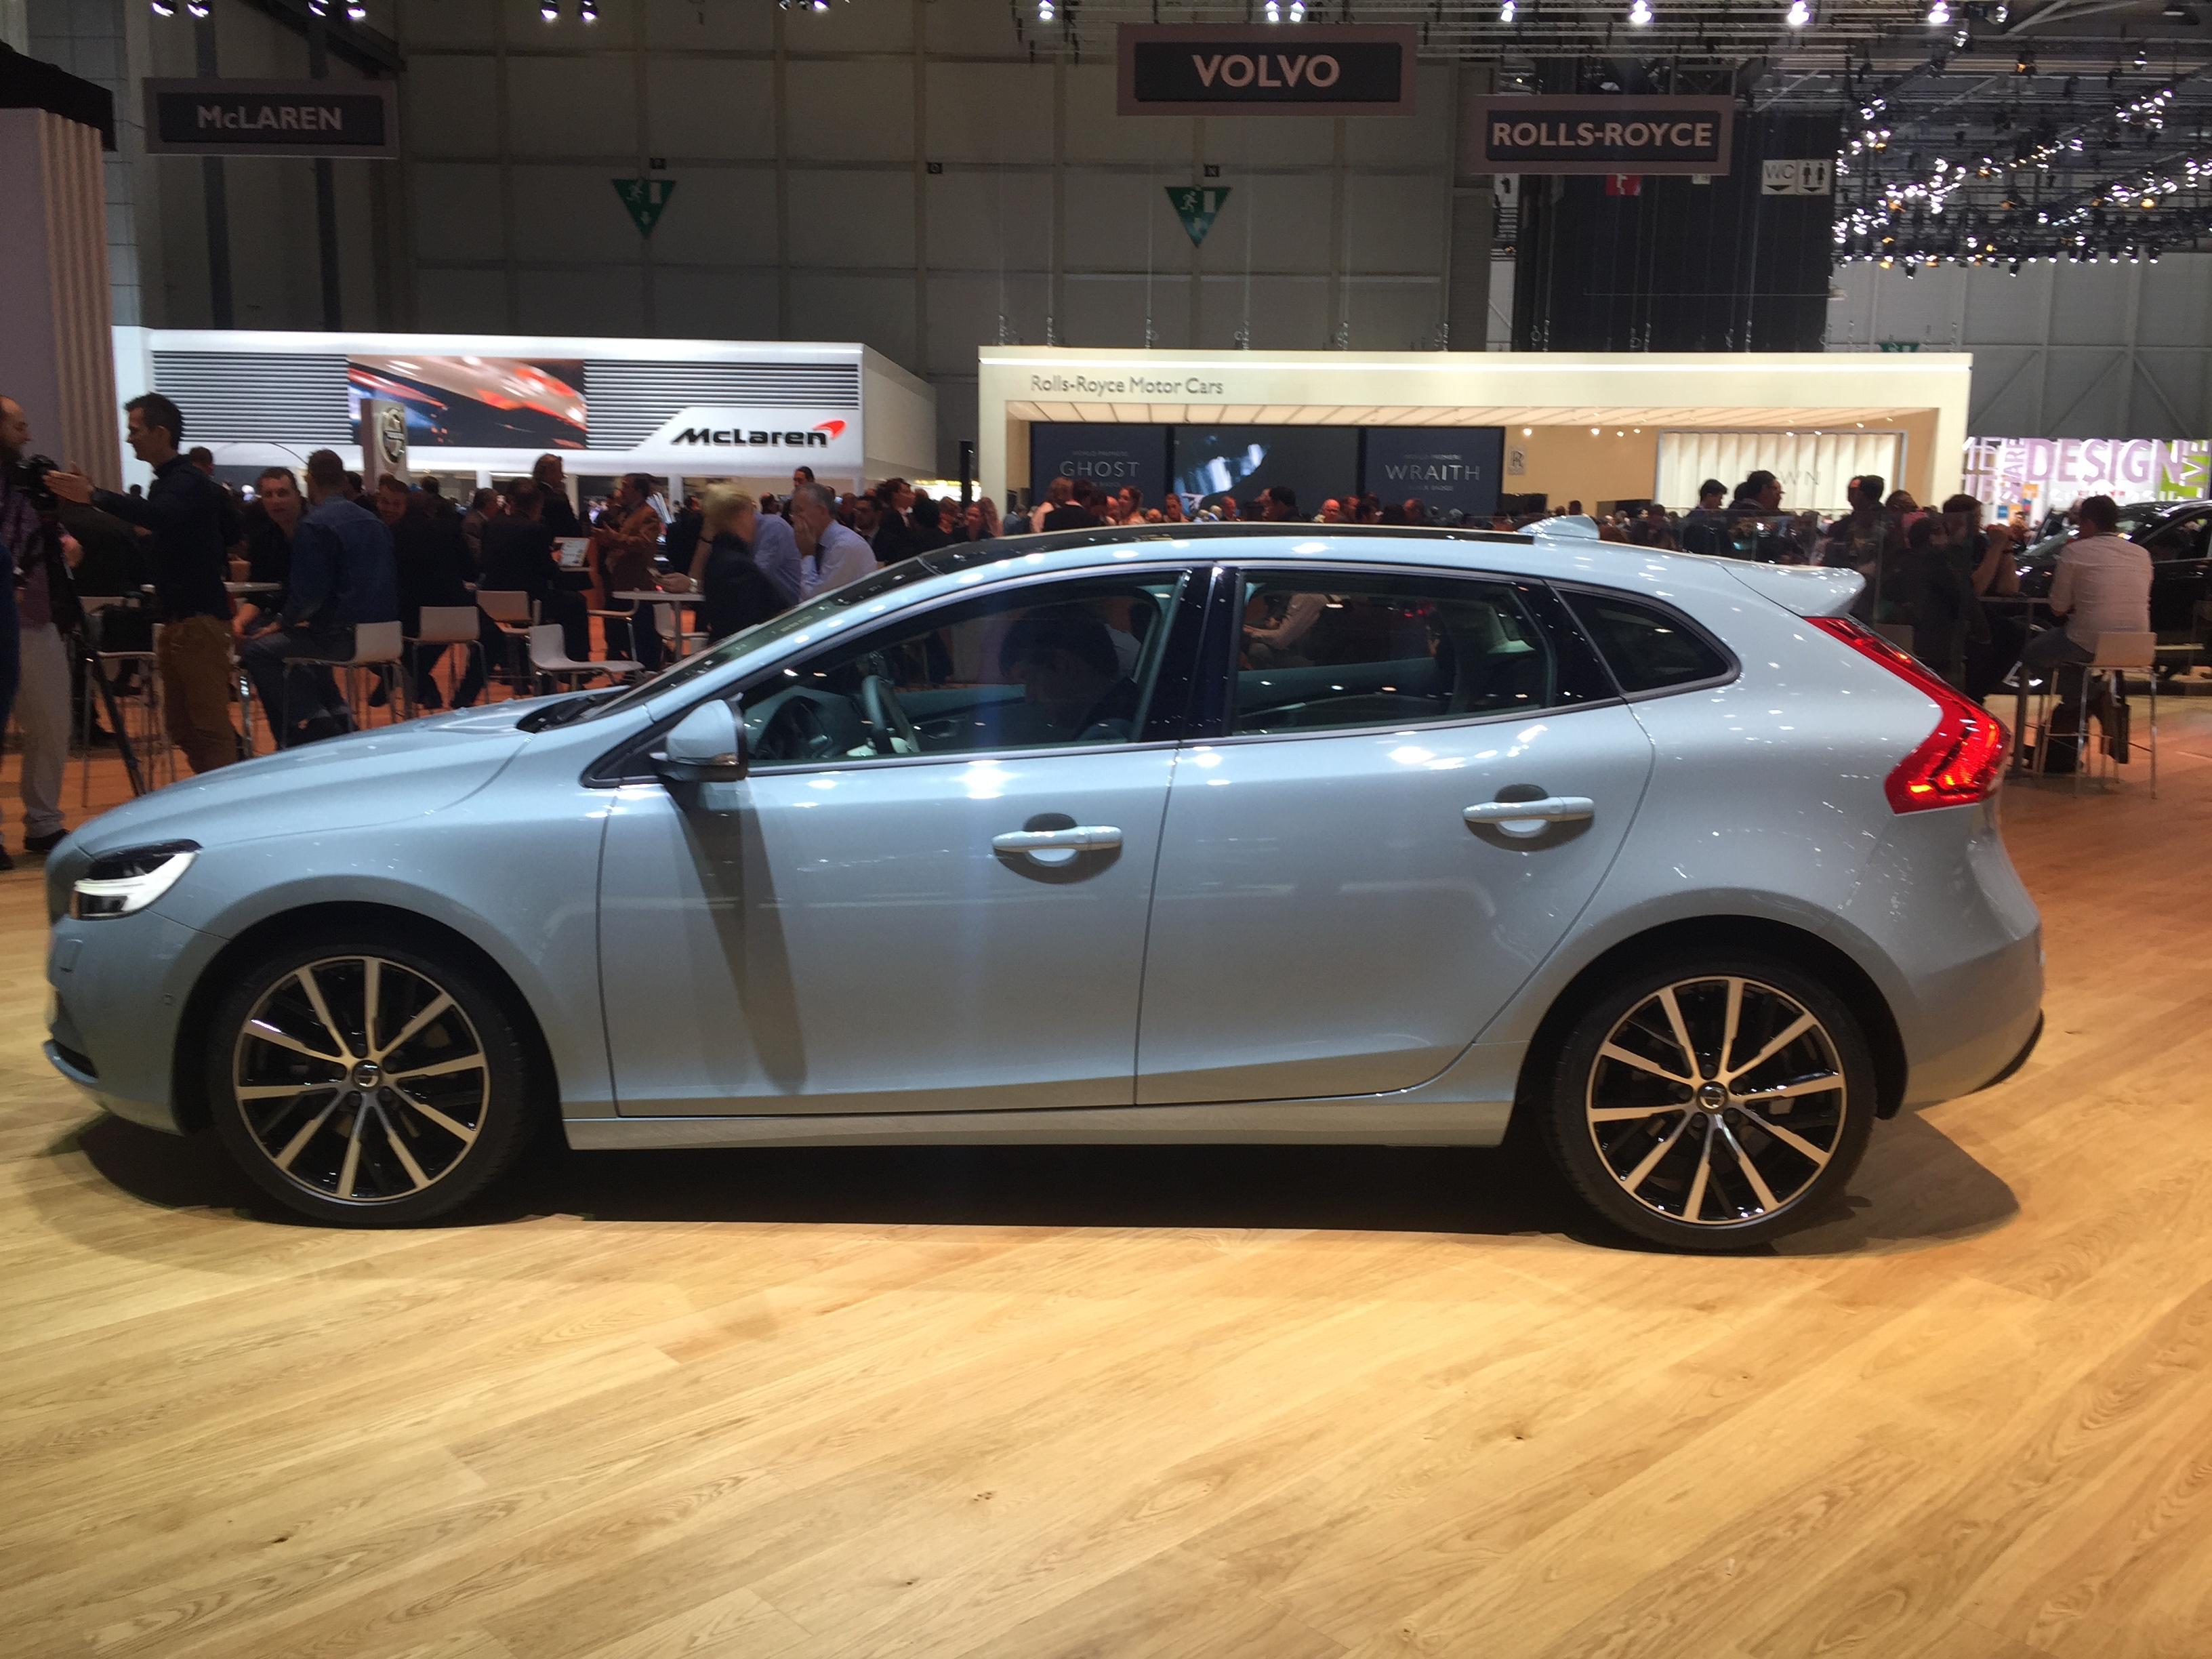 https://images.caradisiac.com/images/7/0/1/7/107017/S0-volvo-v40-restylee-timidement-en-direct-du-salon-de-geneve-2016-373778.jpg